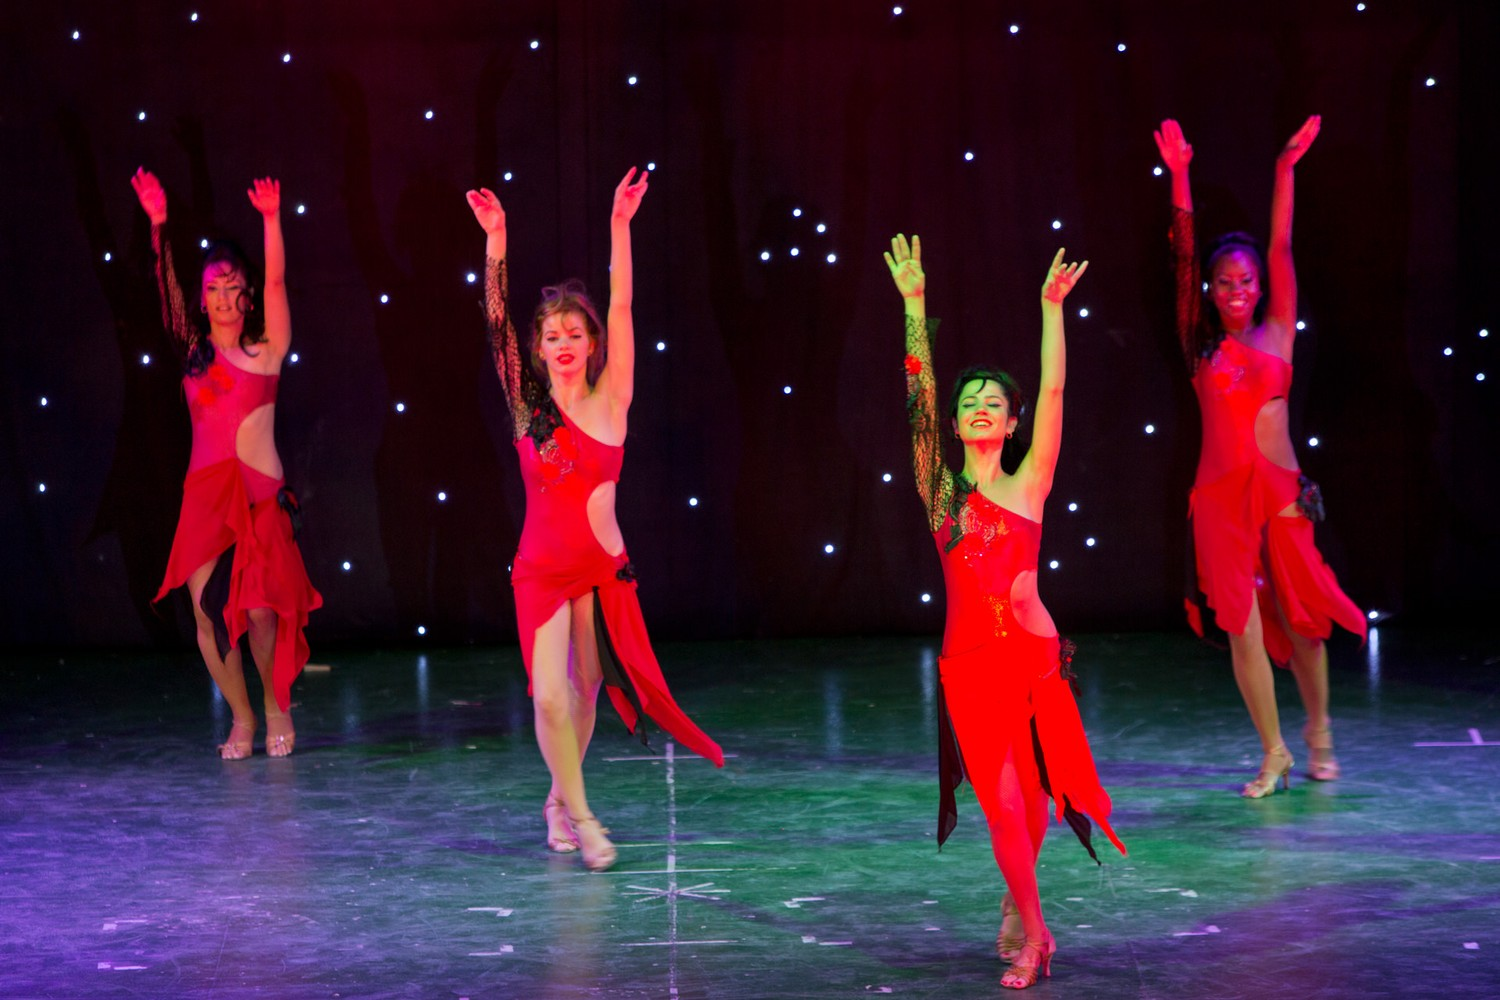 ic_hotels_green_palace_evening_show_29.jpg